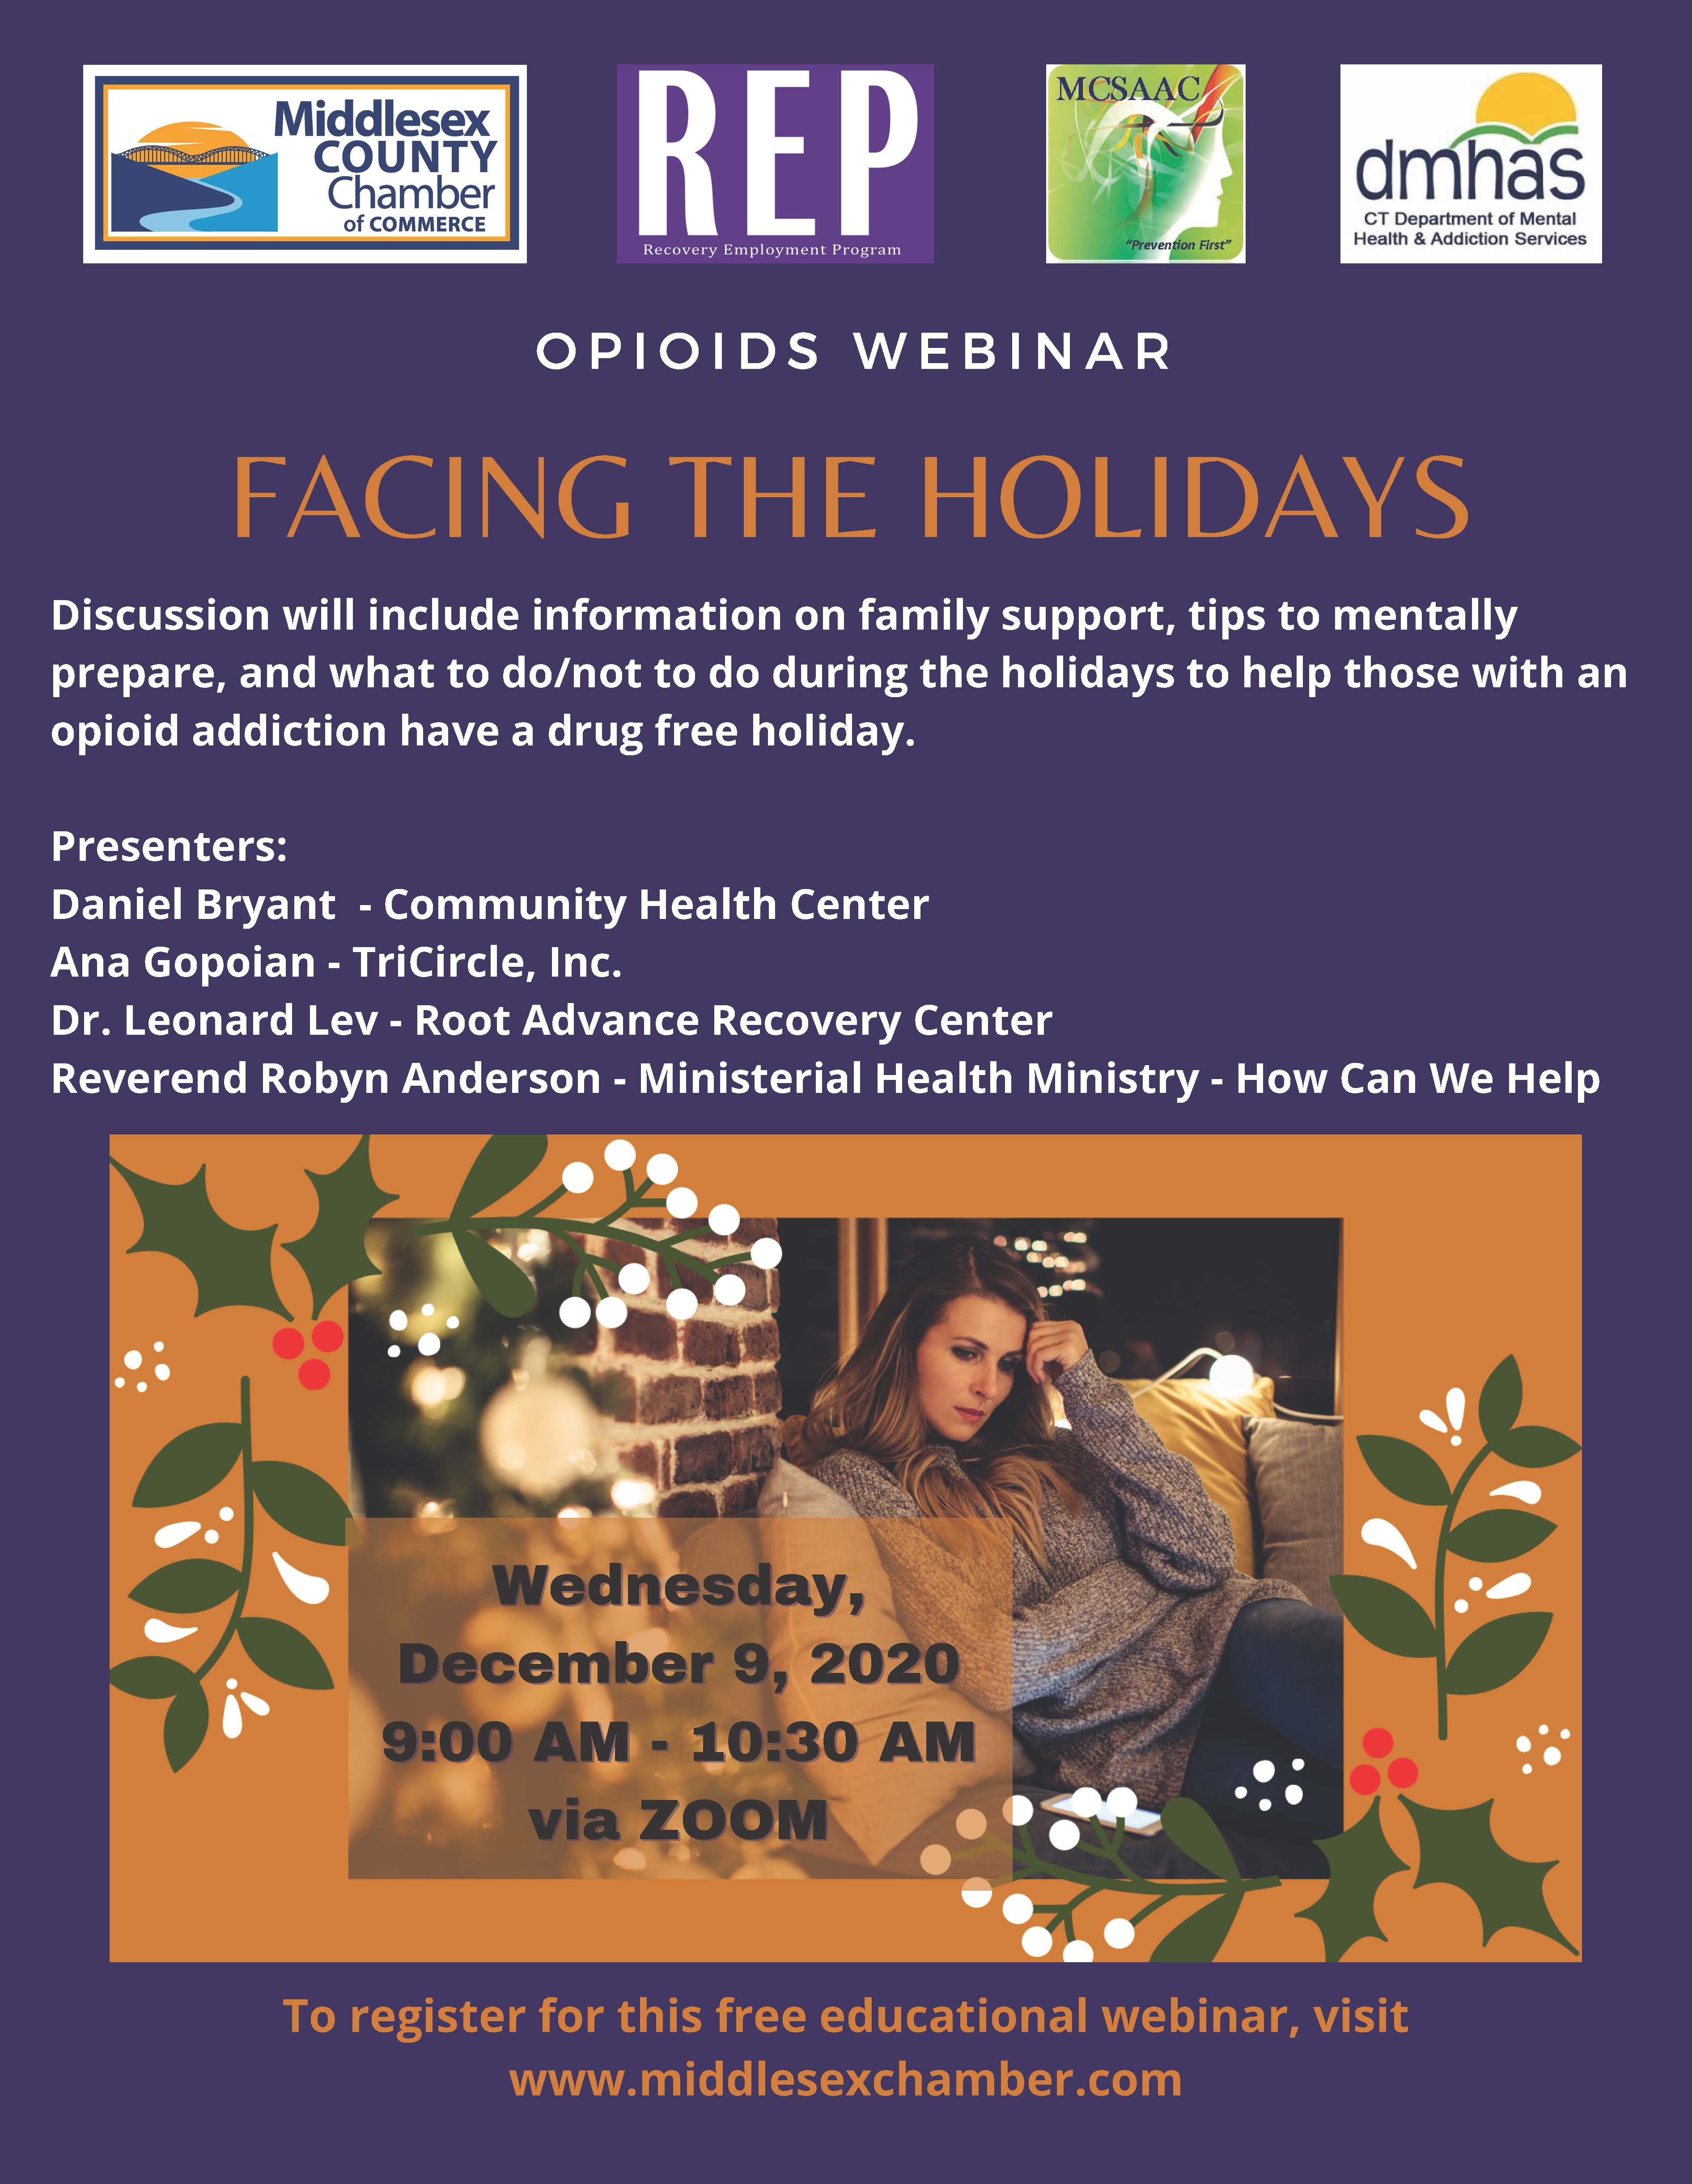 Facing the Holidays flyer